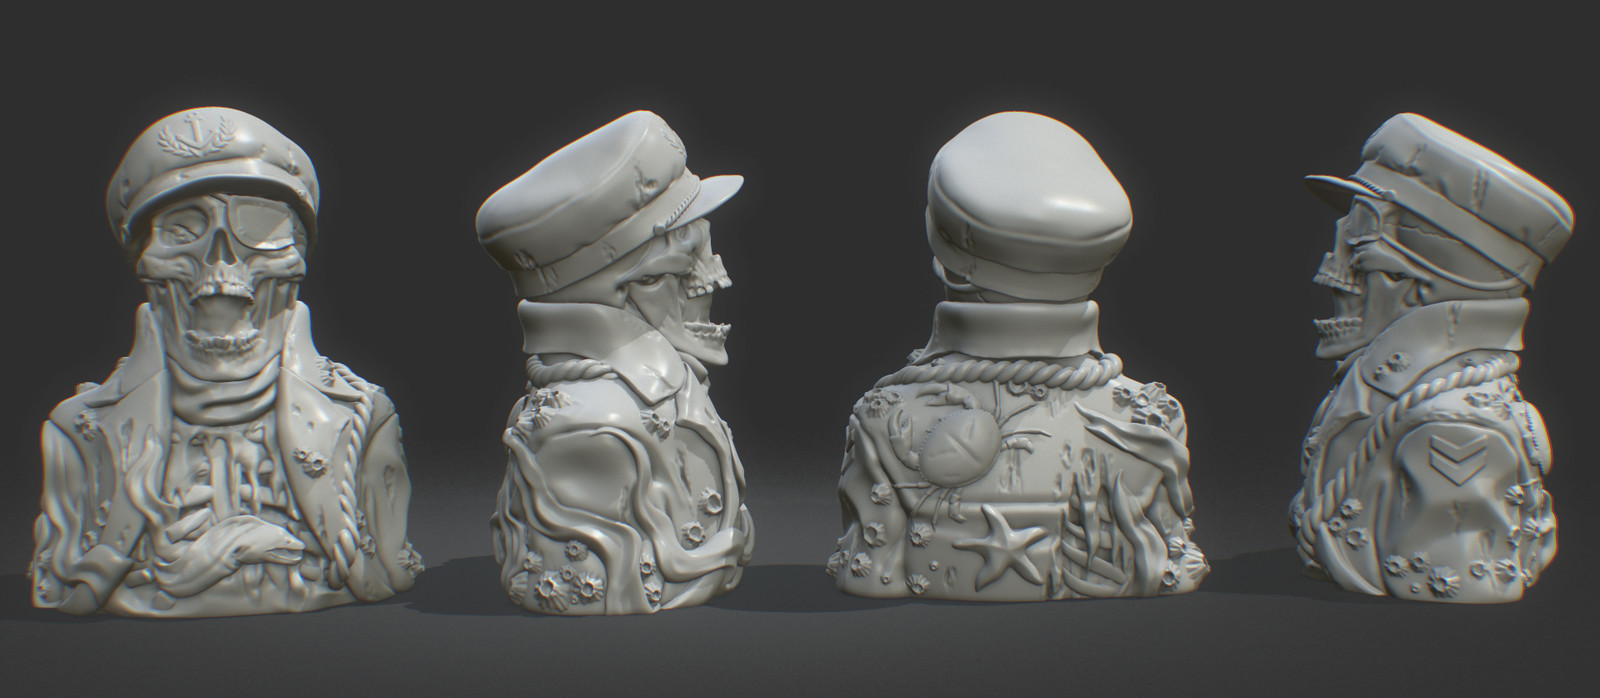 Munktiki Mug Project.